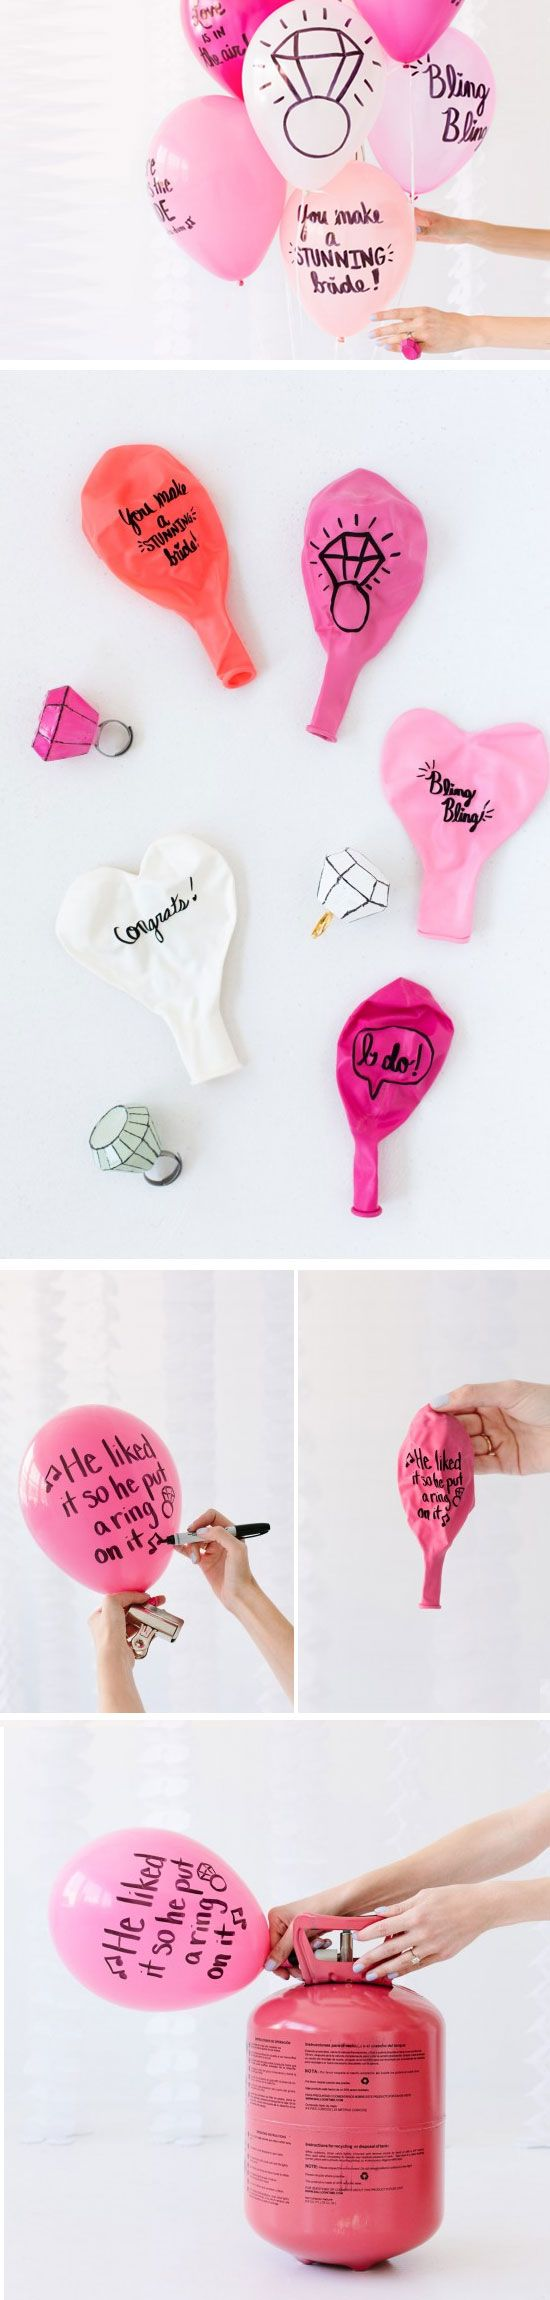 Super original para decorar uma DS exclusiva! #Sweet #Balloon #Partyideas #DIY